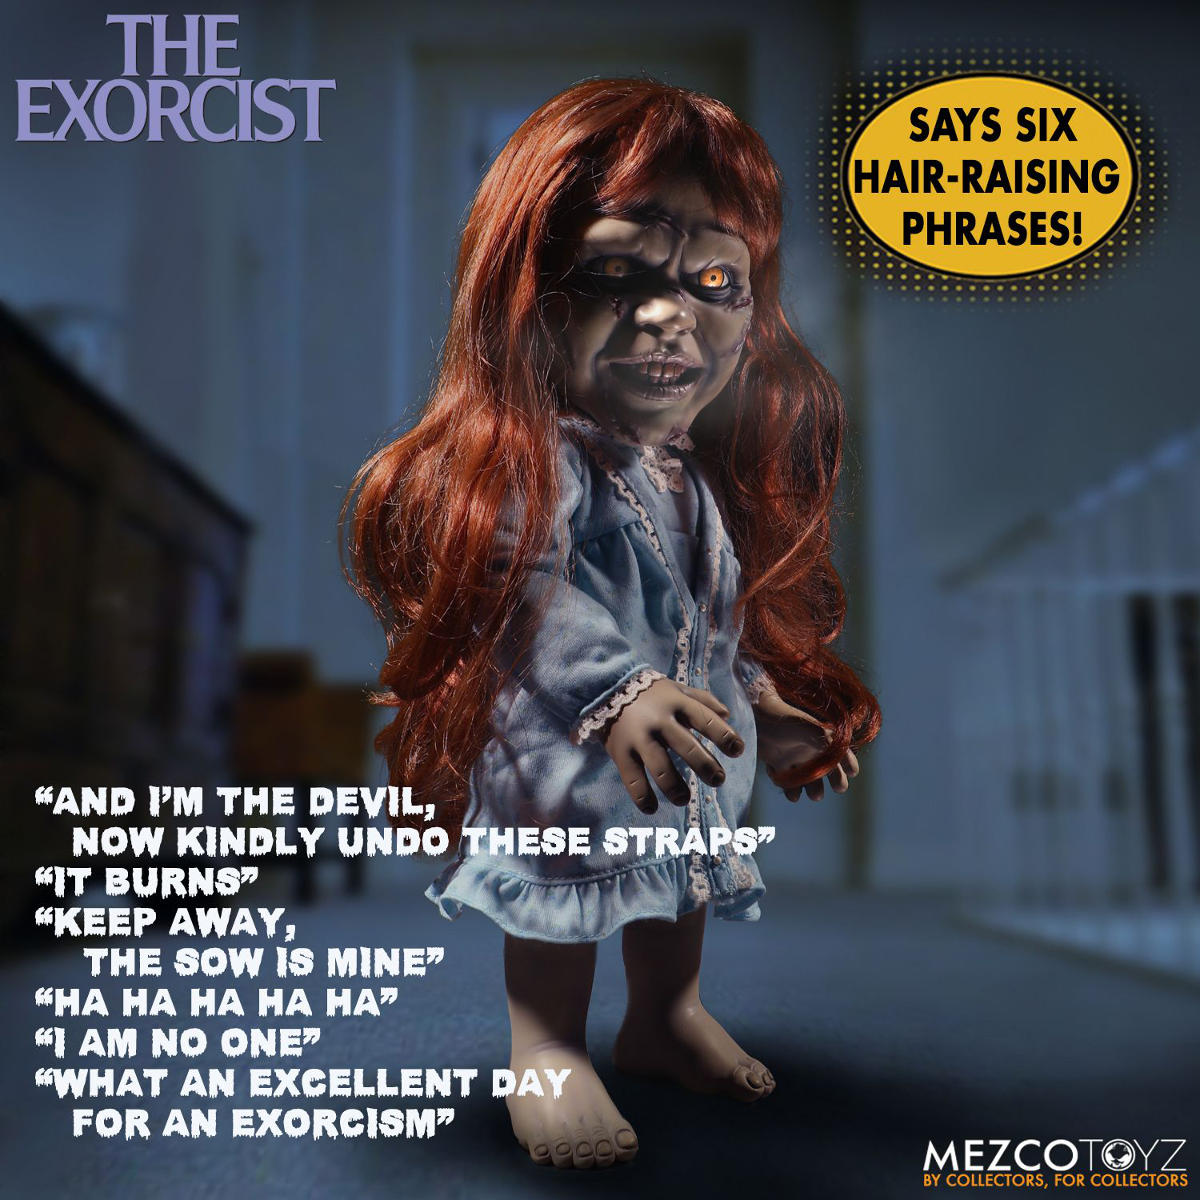 Mezco Toyz The Exorcist 3